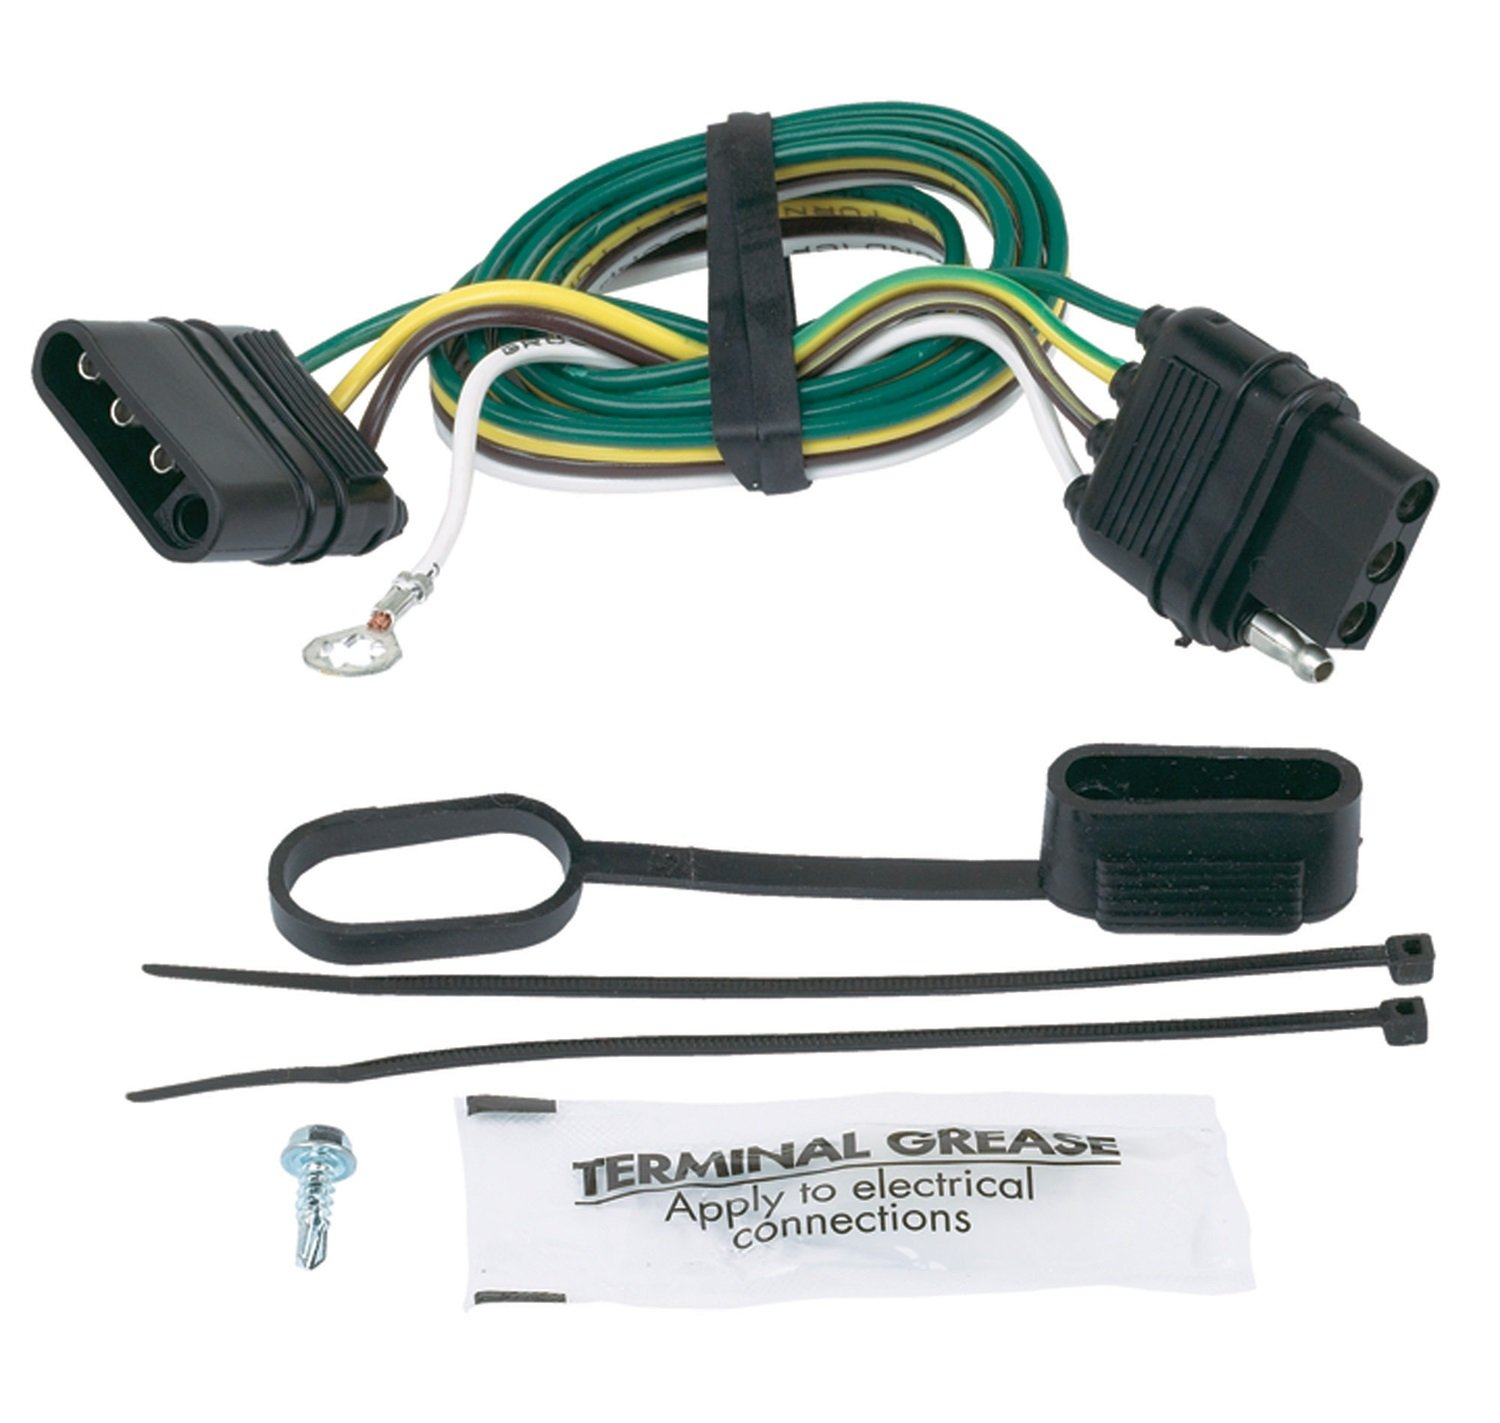 71GHBOYLsIL._SL1500_ amazon com hopkins 47105 4 wire flat extension with ground, 32 4 wire trailer harness extension at alyssarenee.co